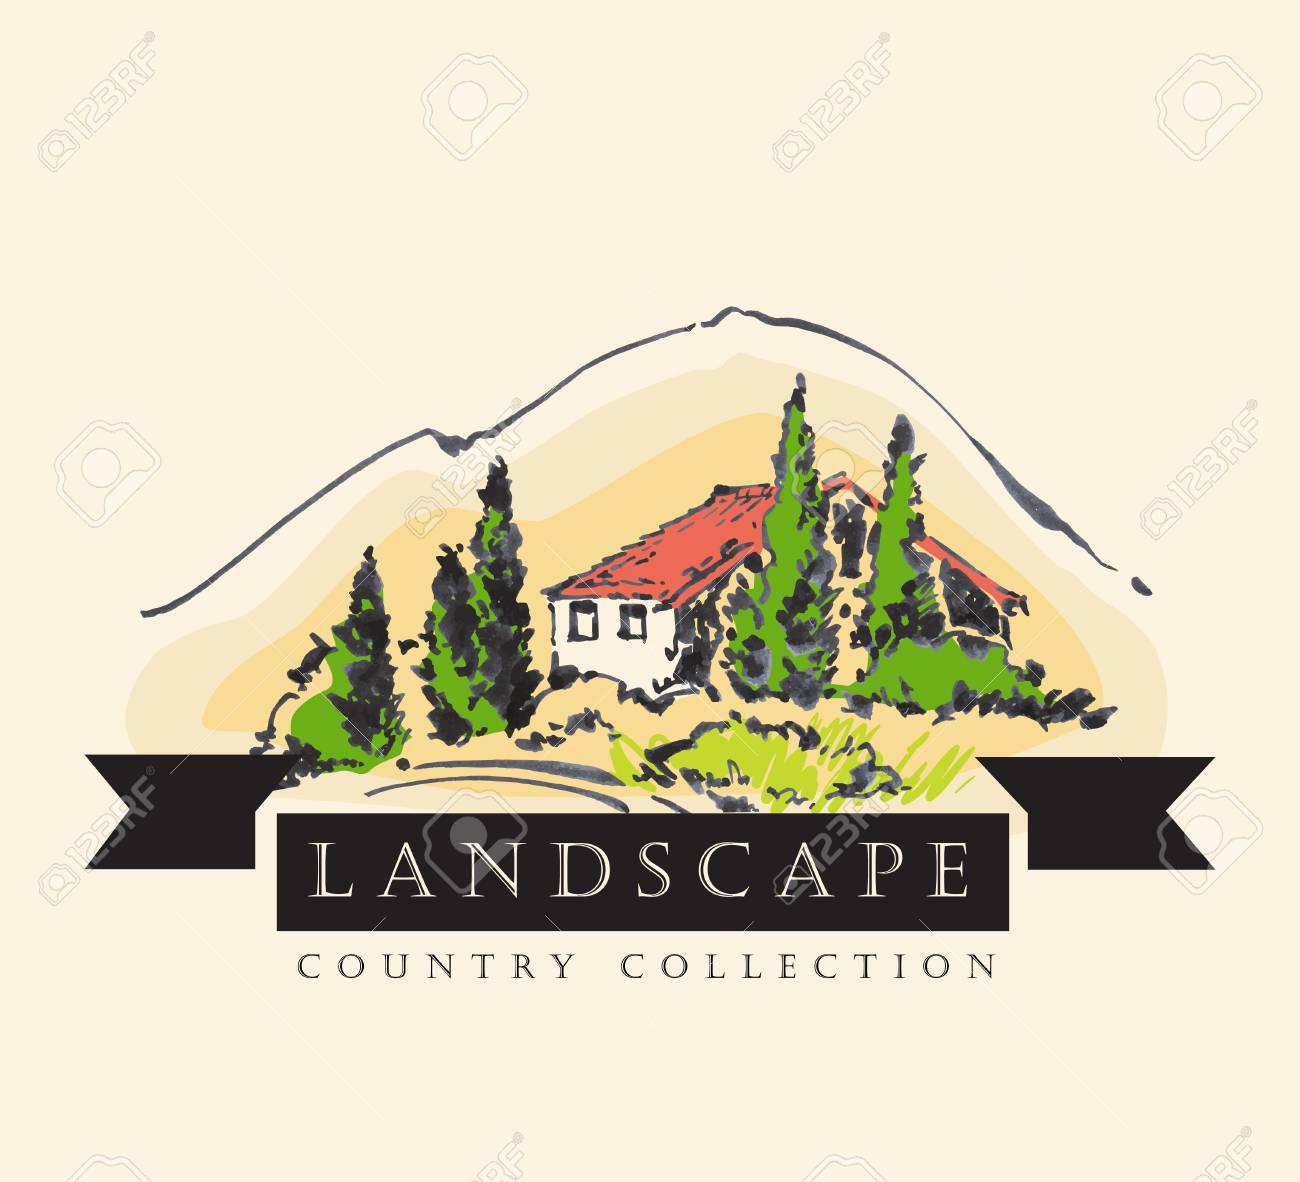 Soulful Pen Hand Vector Illustration Country Style Landscape Design Country Style Building Landscapes Ltd Pen Hand Vector Illustration Made Invintage Country Ink Country Ink outdoor Country Style Landscape